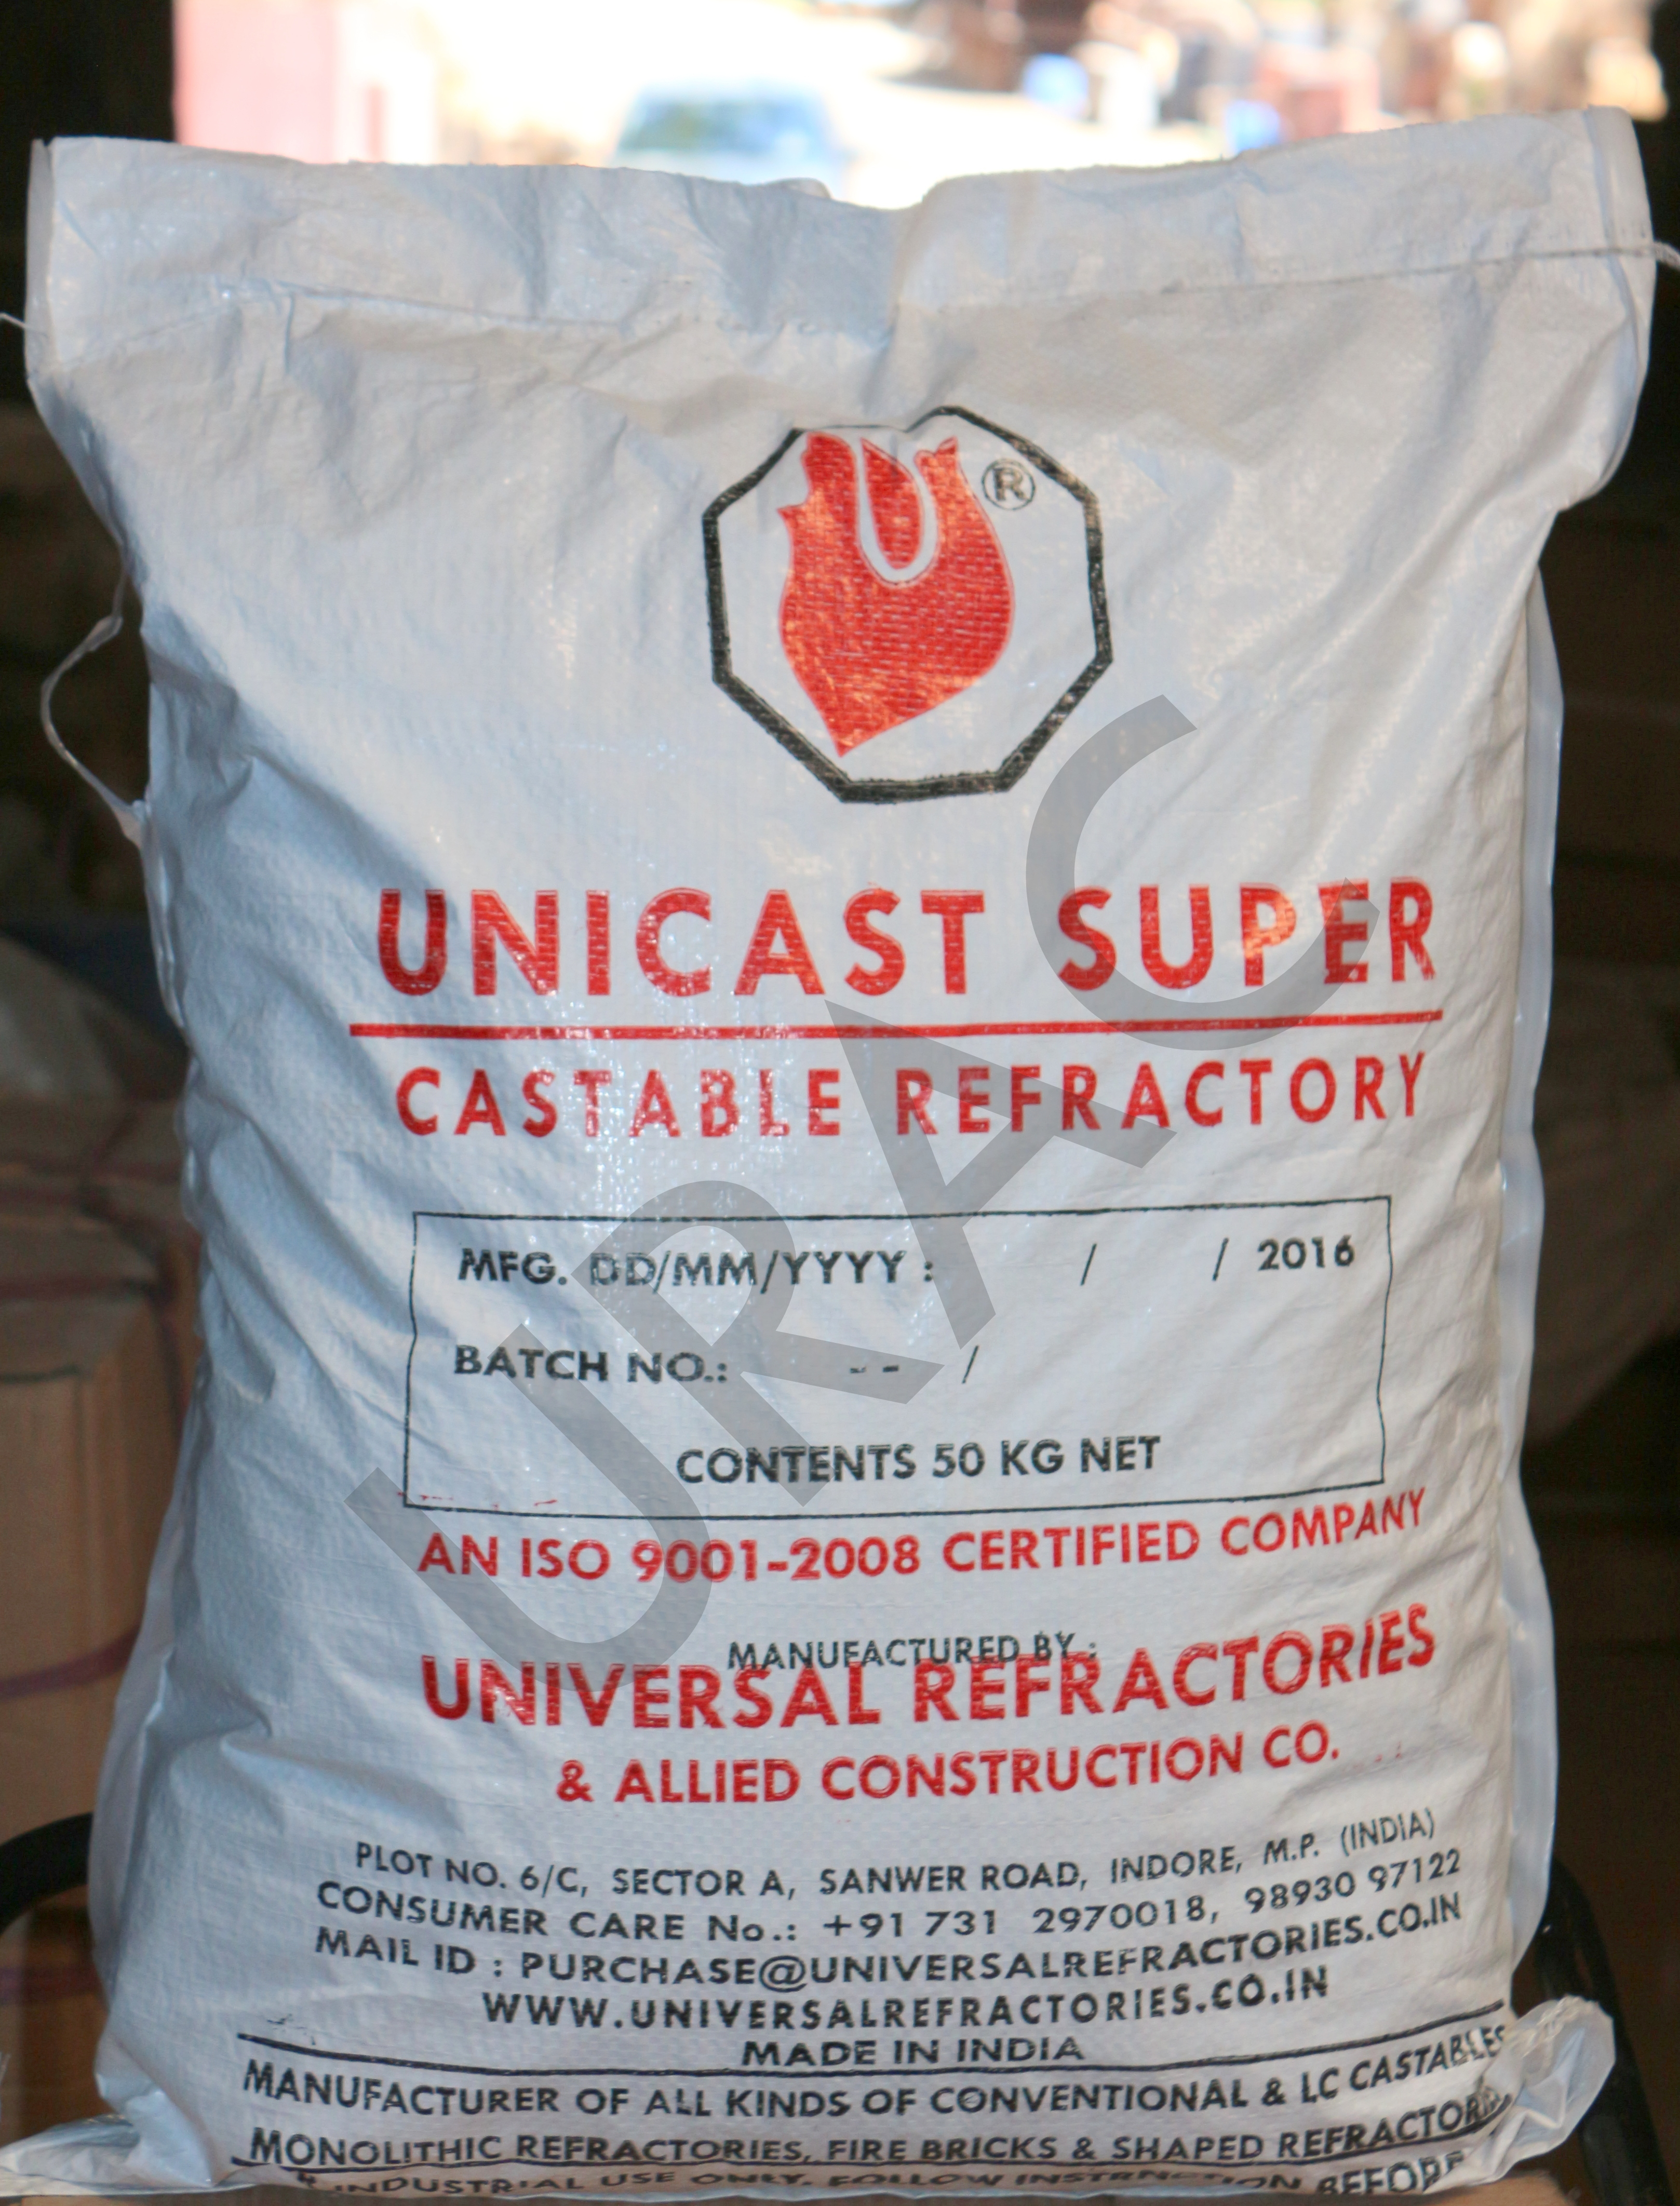 Refractory Unicast Super Castable Manufacturer & Supplier in Madhya